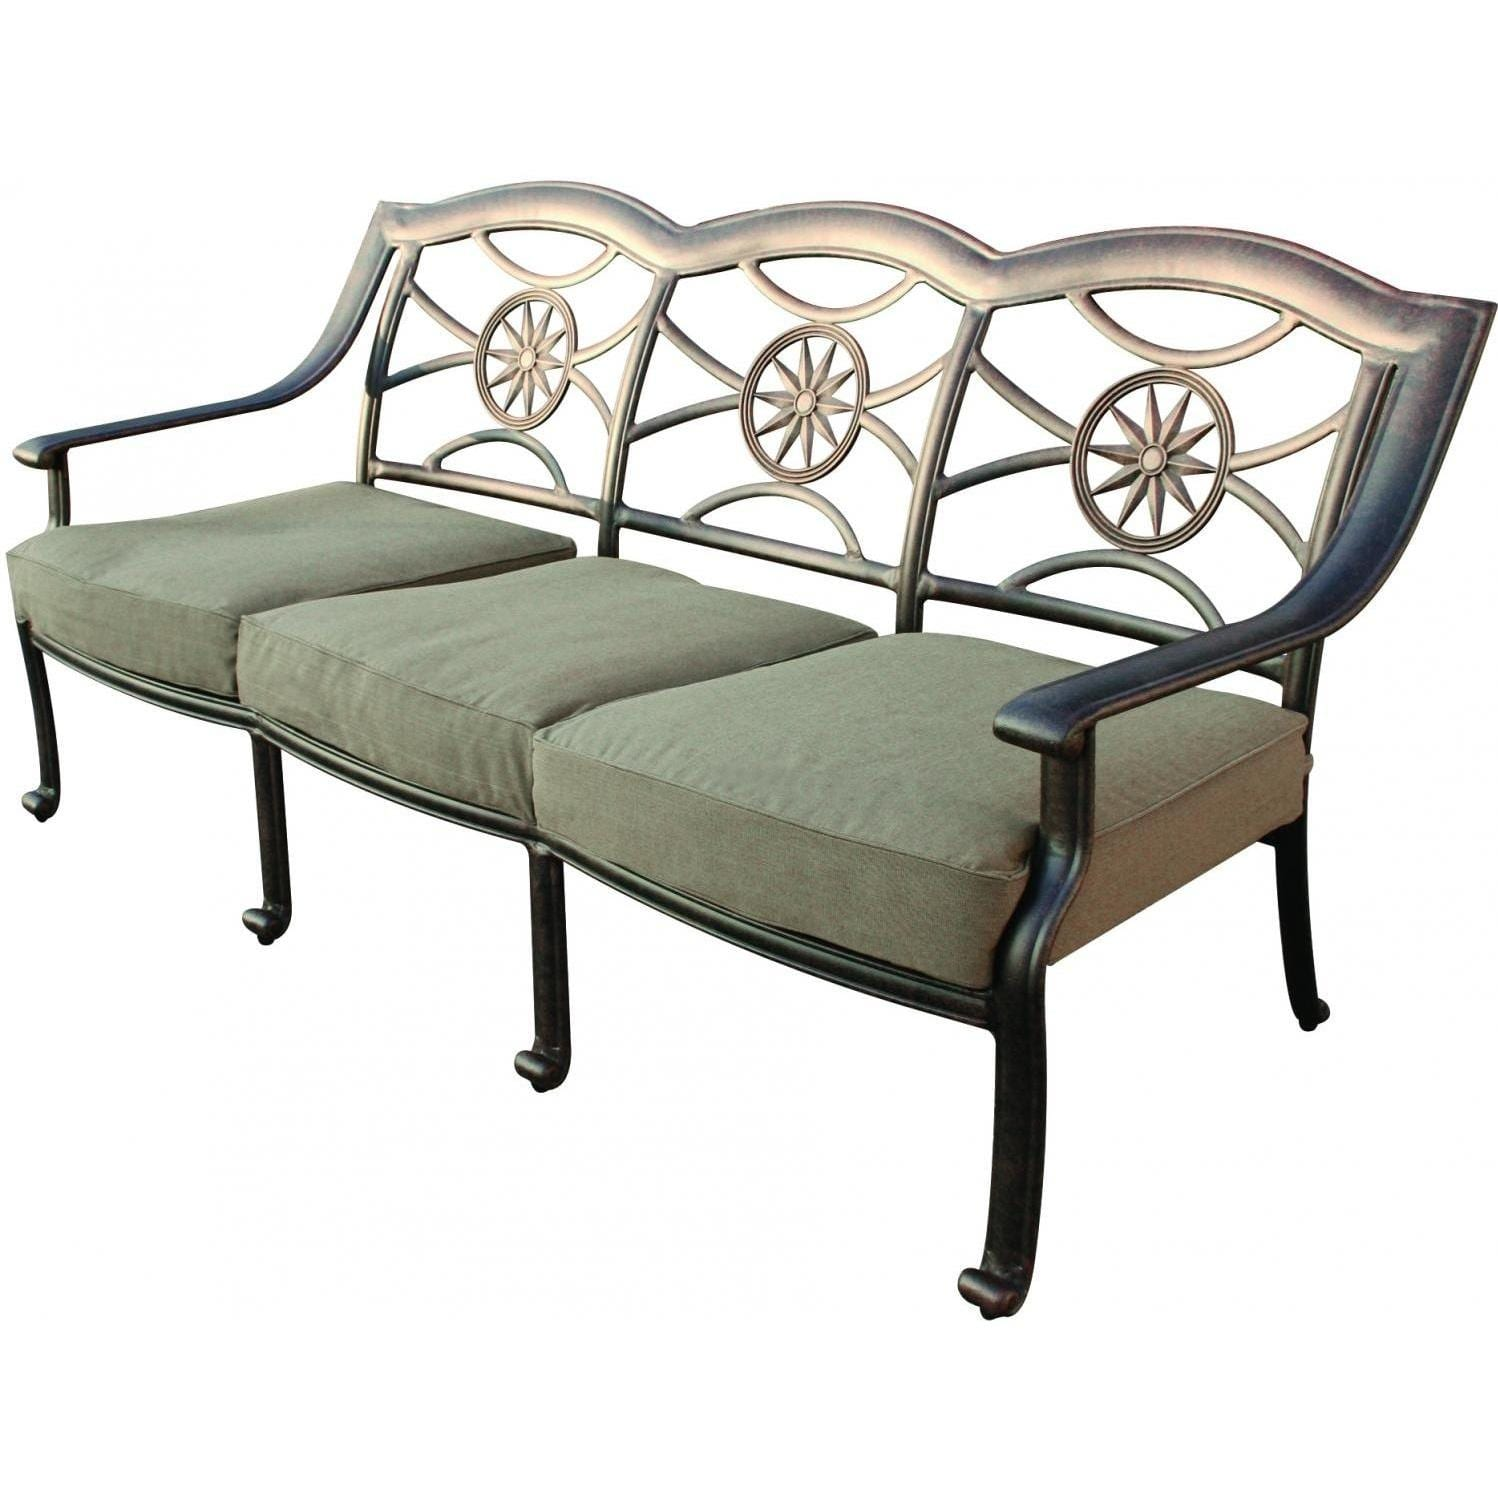 Darlee Ten Star Cast Aluminum Patio Sofa